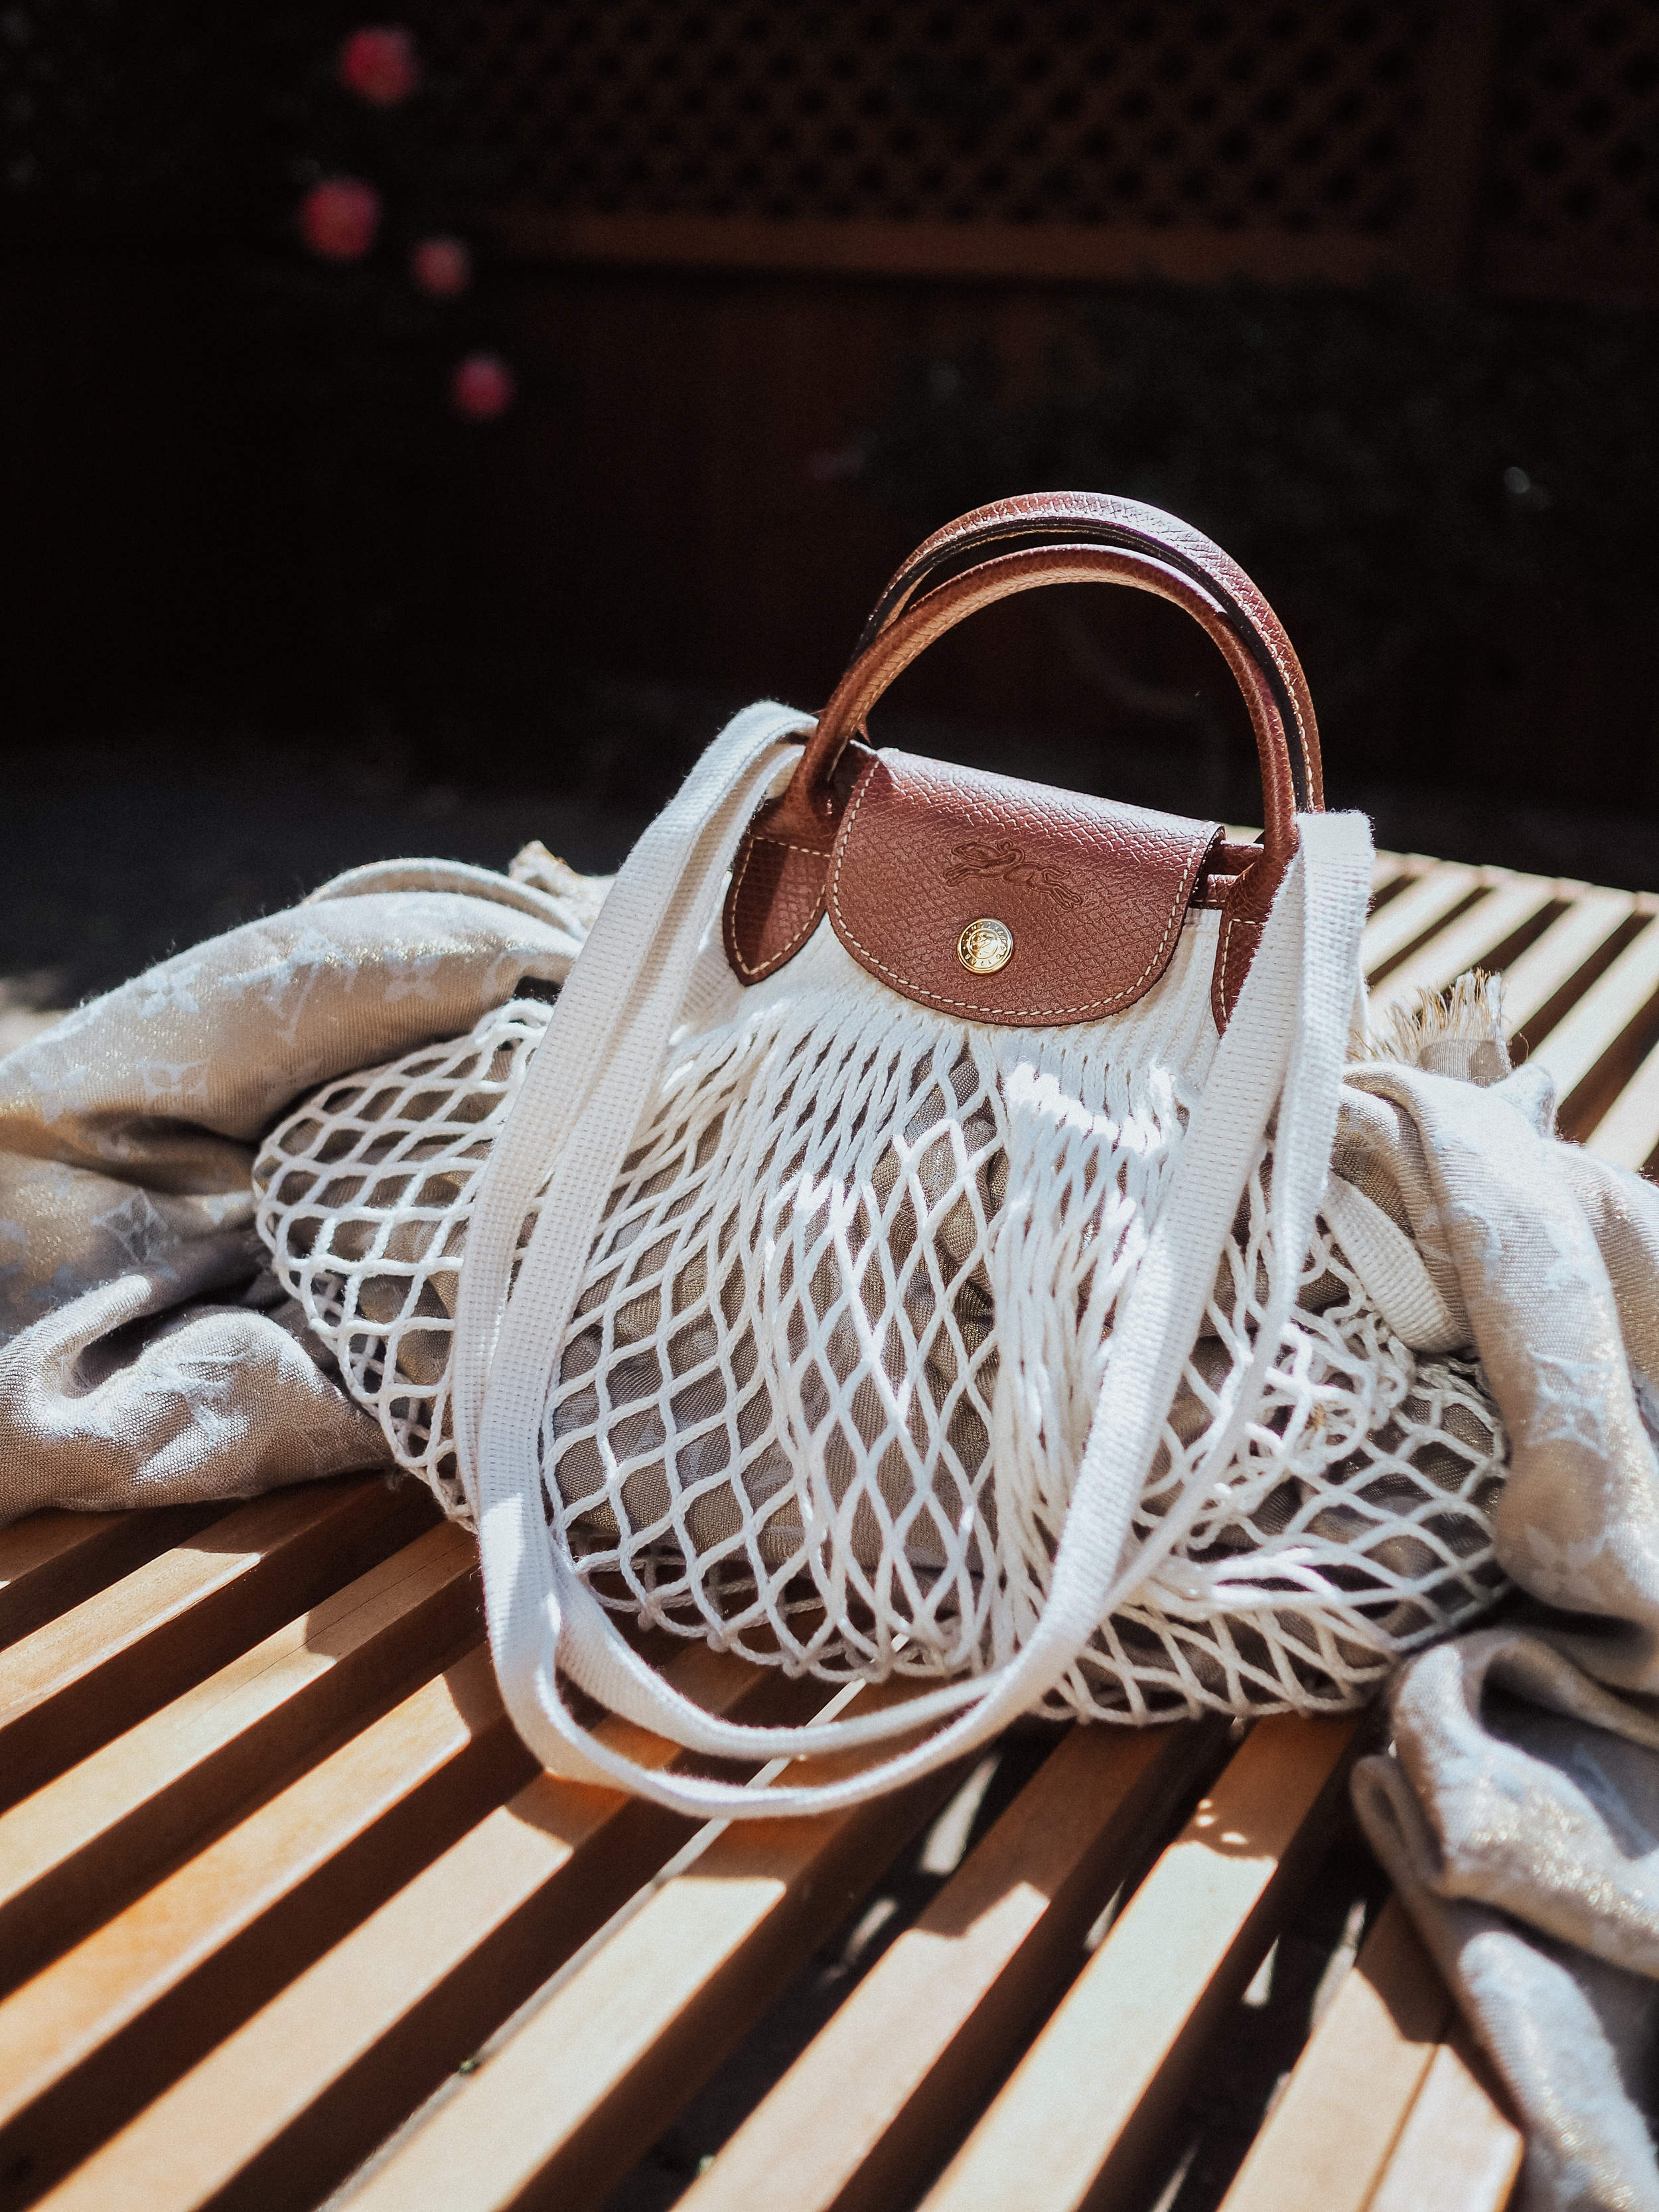 The classic nylon Longchamp Le Pliage is an undeniably popular style. The Filet version of the Le Pliage adds a new twist on an old favorite.